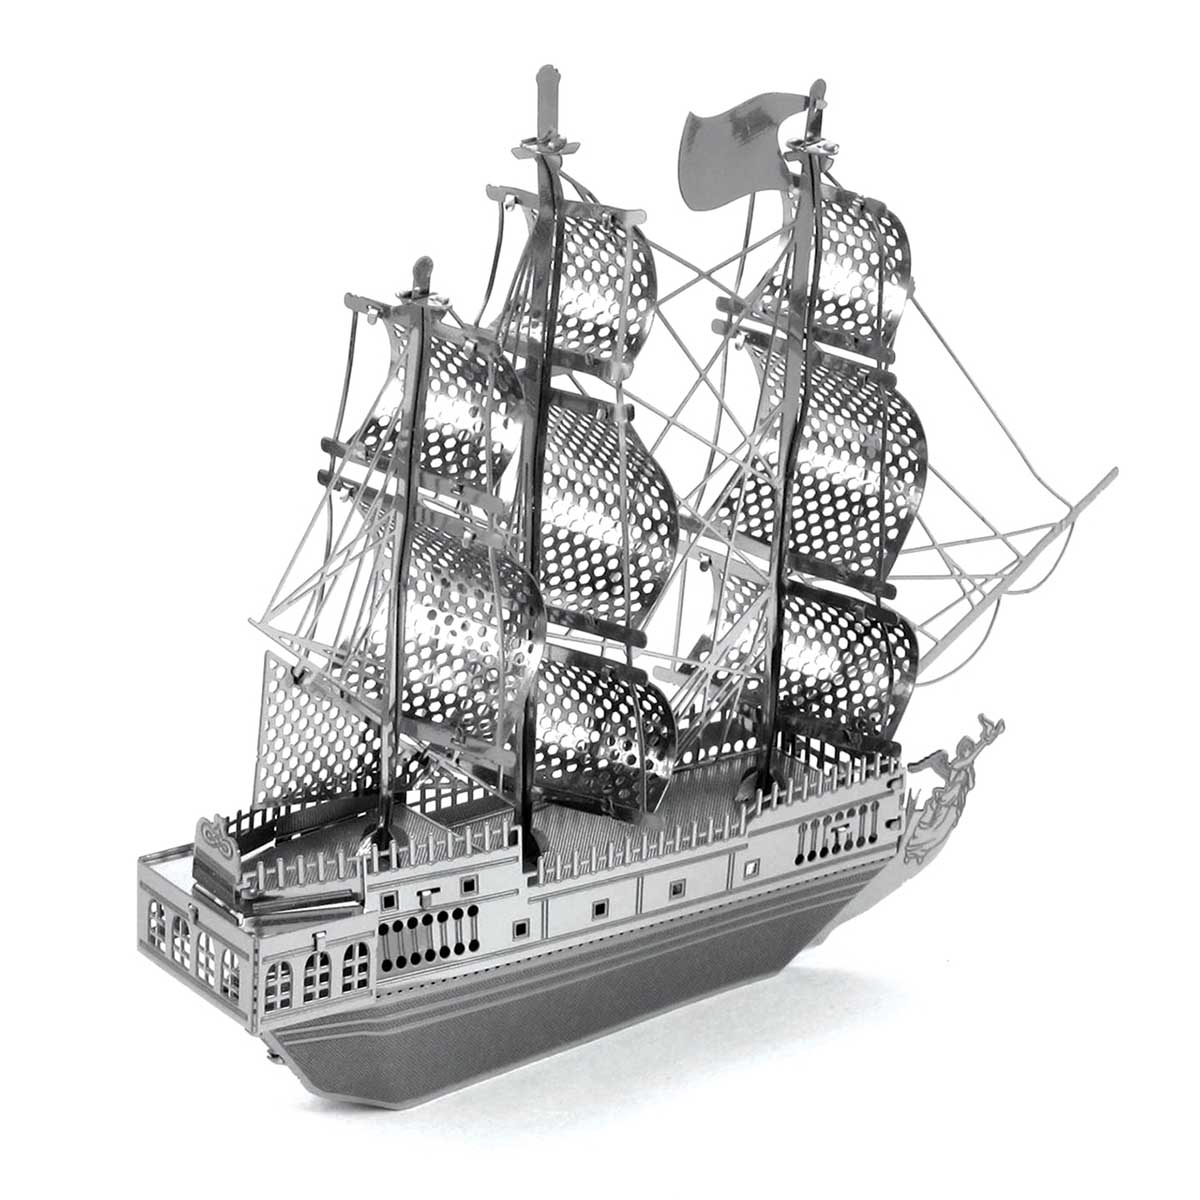 Black Pearl ship Boats Metal Puzzles